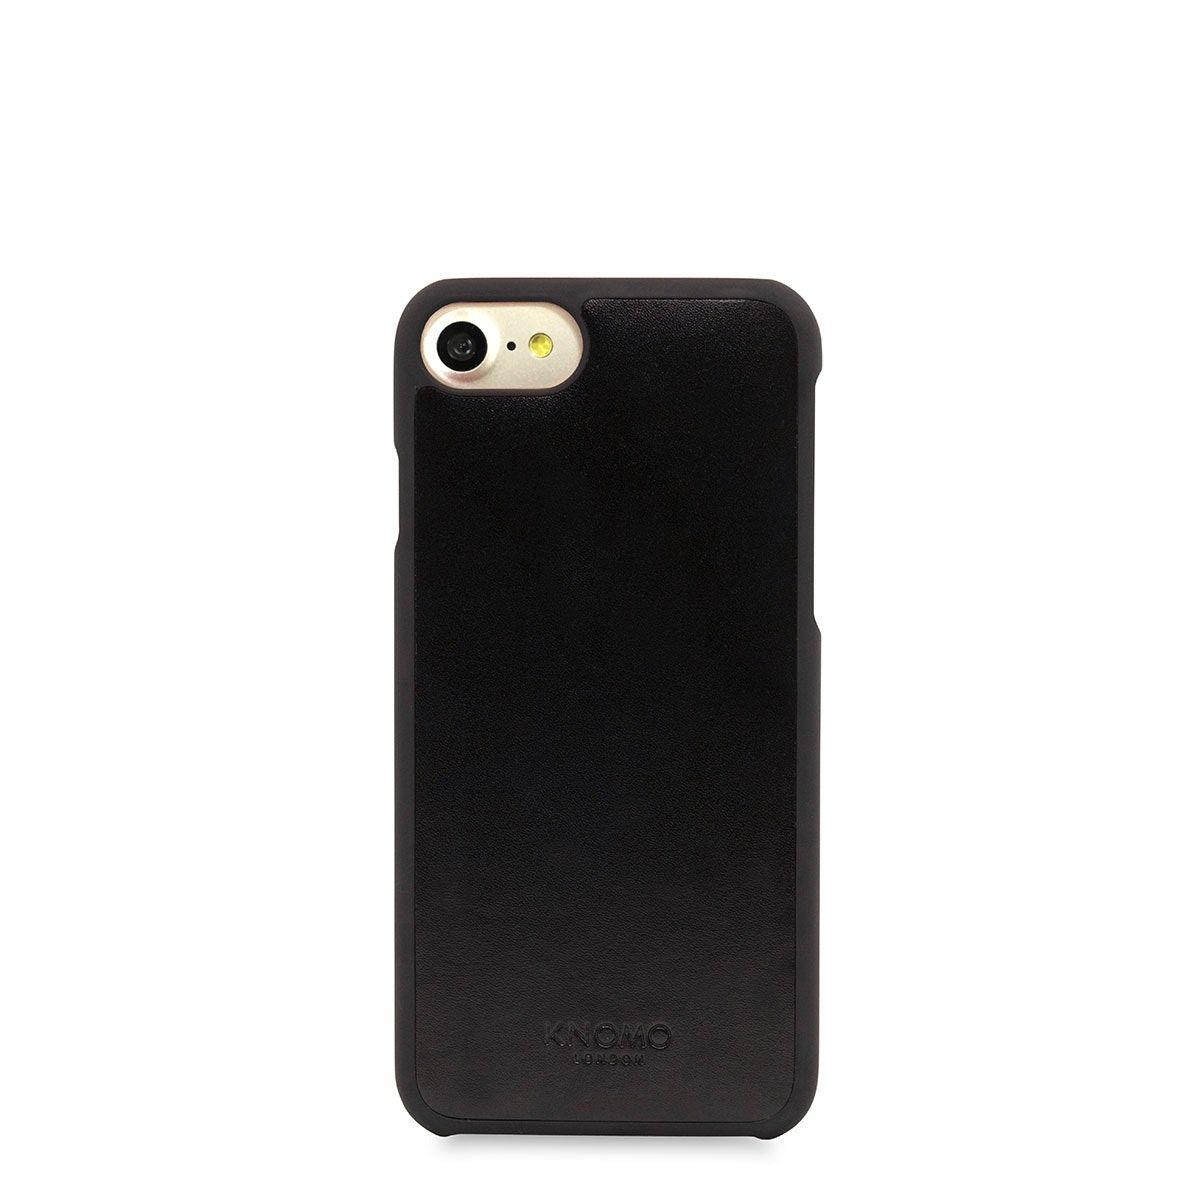 iPhone hoesje Knomo iPhone 8/7 Hoesje Leather Snap On Case Black